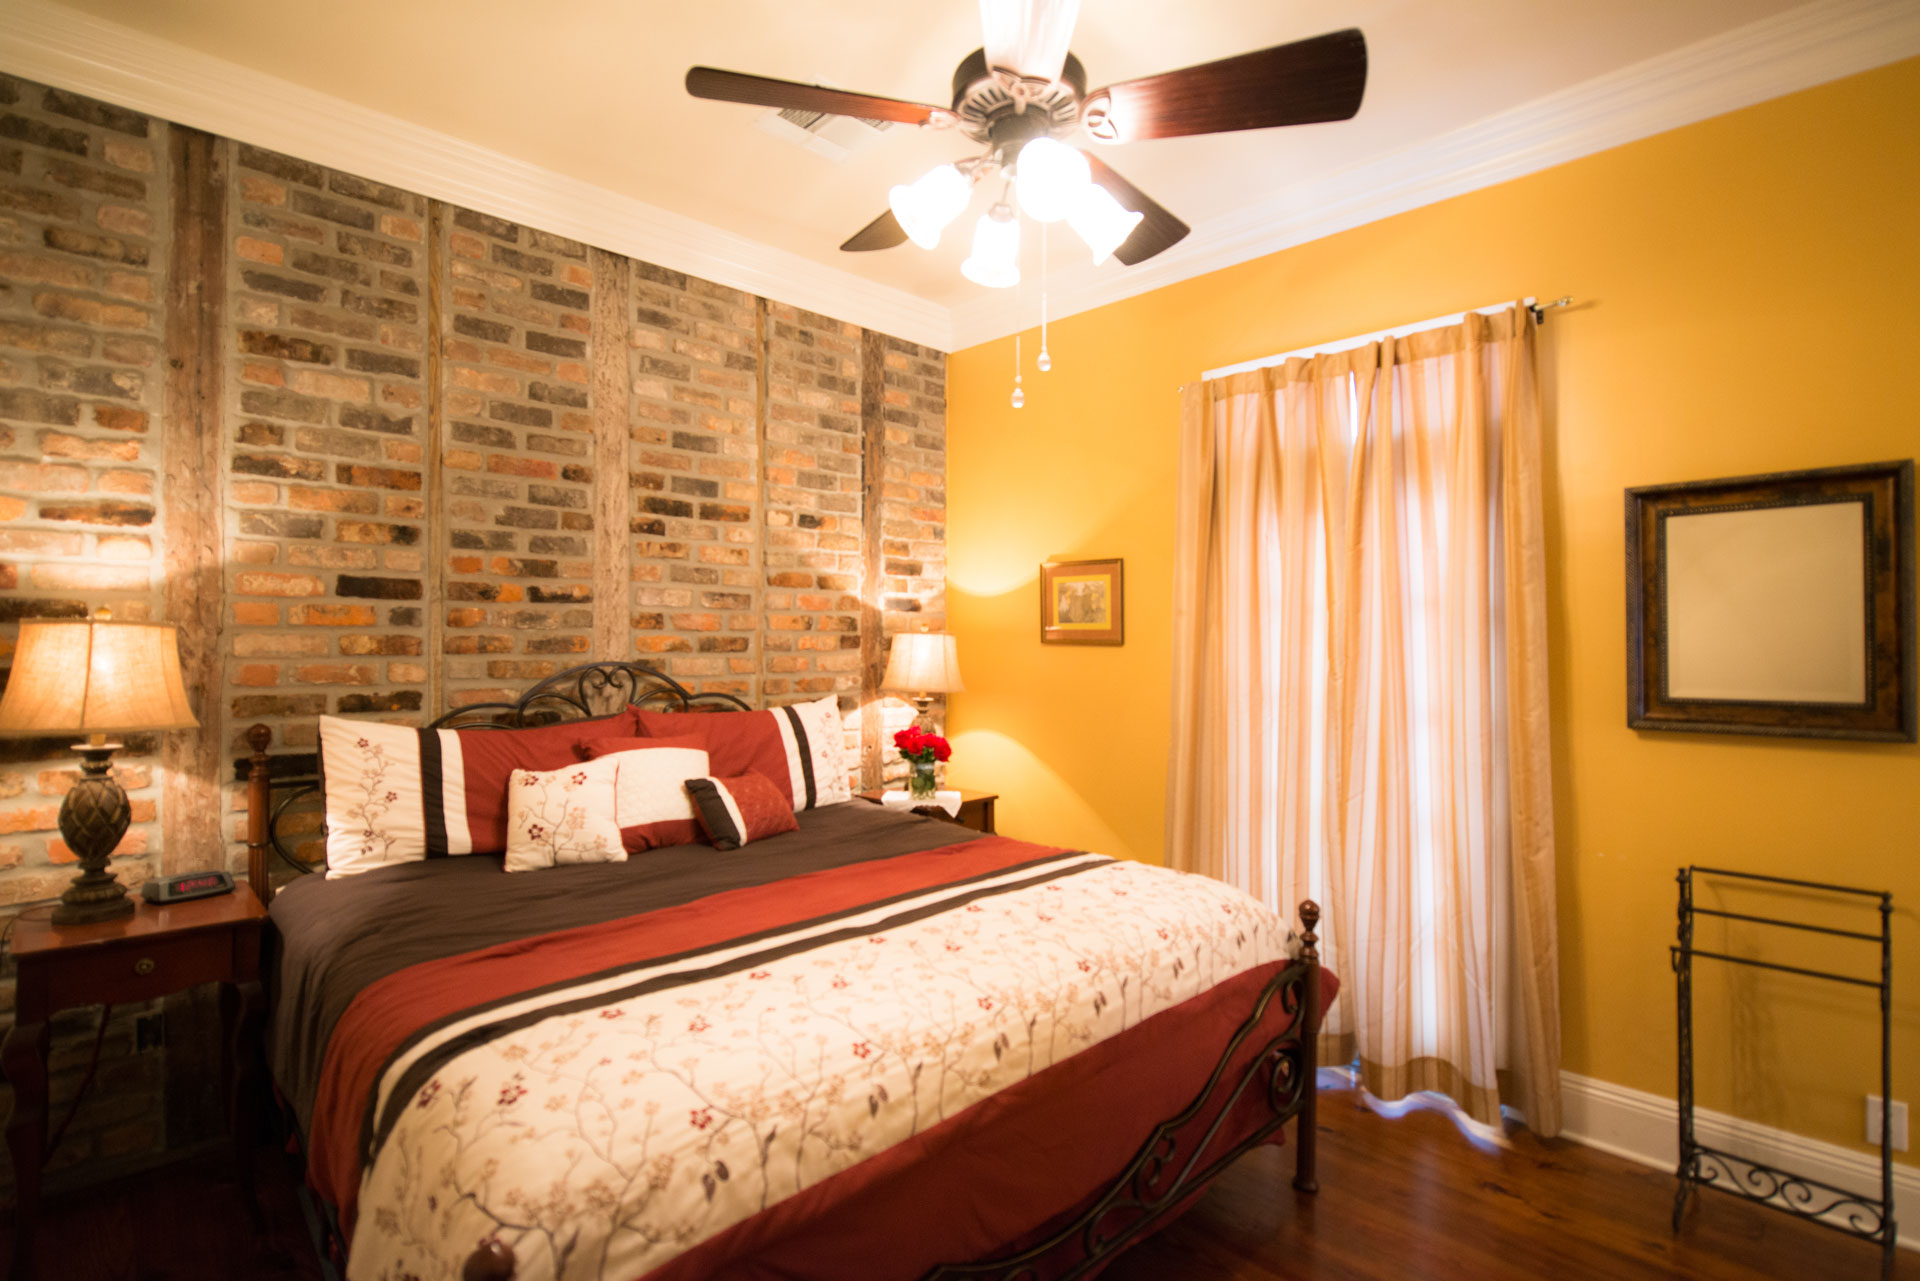 New Orleans 2 Bedroom Suites French Quarter Two Bedroom Suites In New Orleans Villas Arizona Biltmore Waldorf